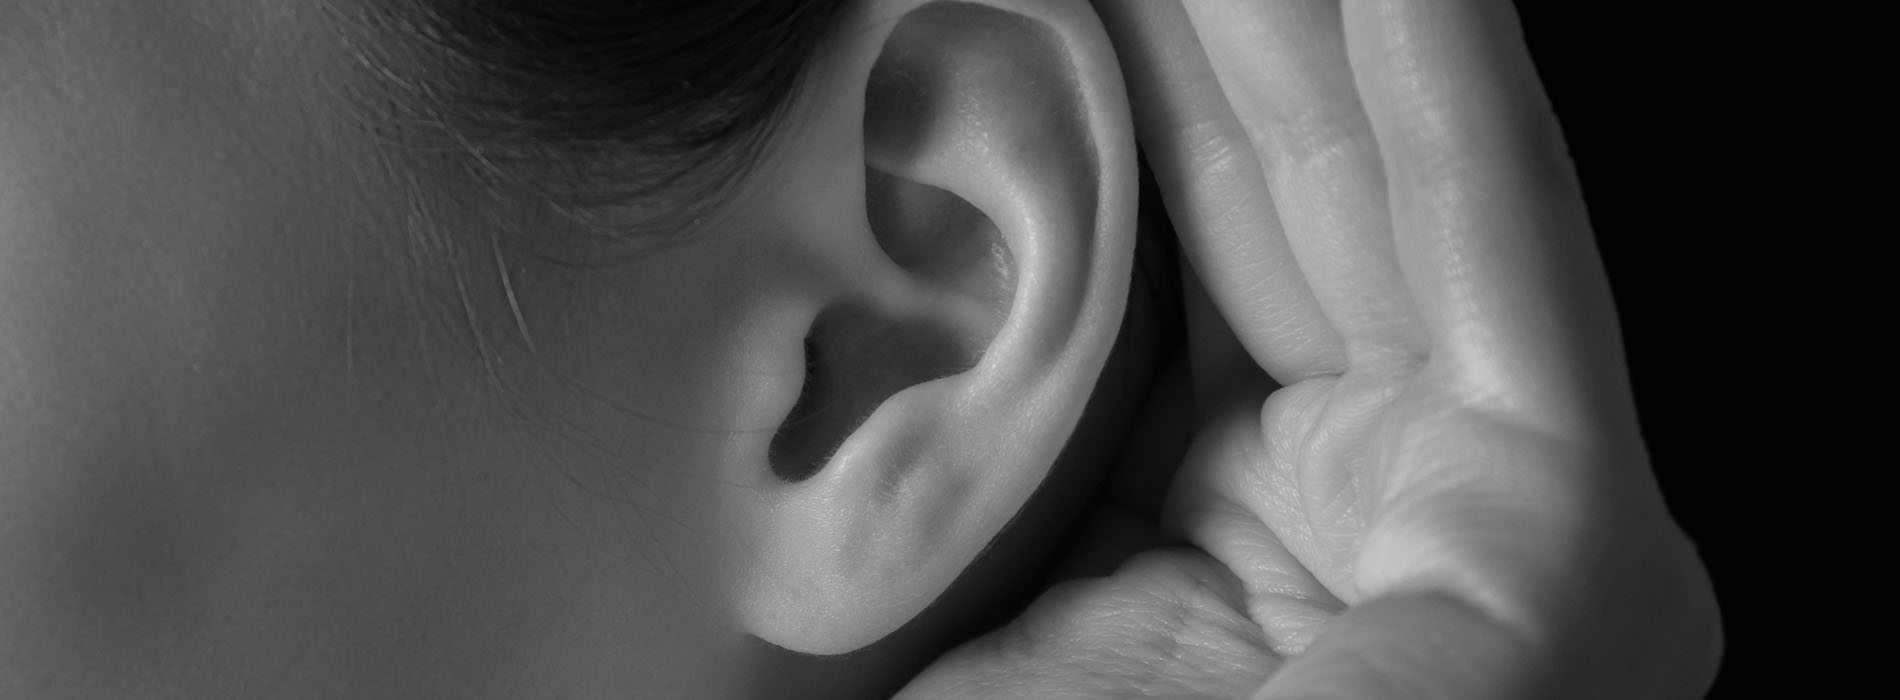 Close up of woman cupping her hand behind her ear